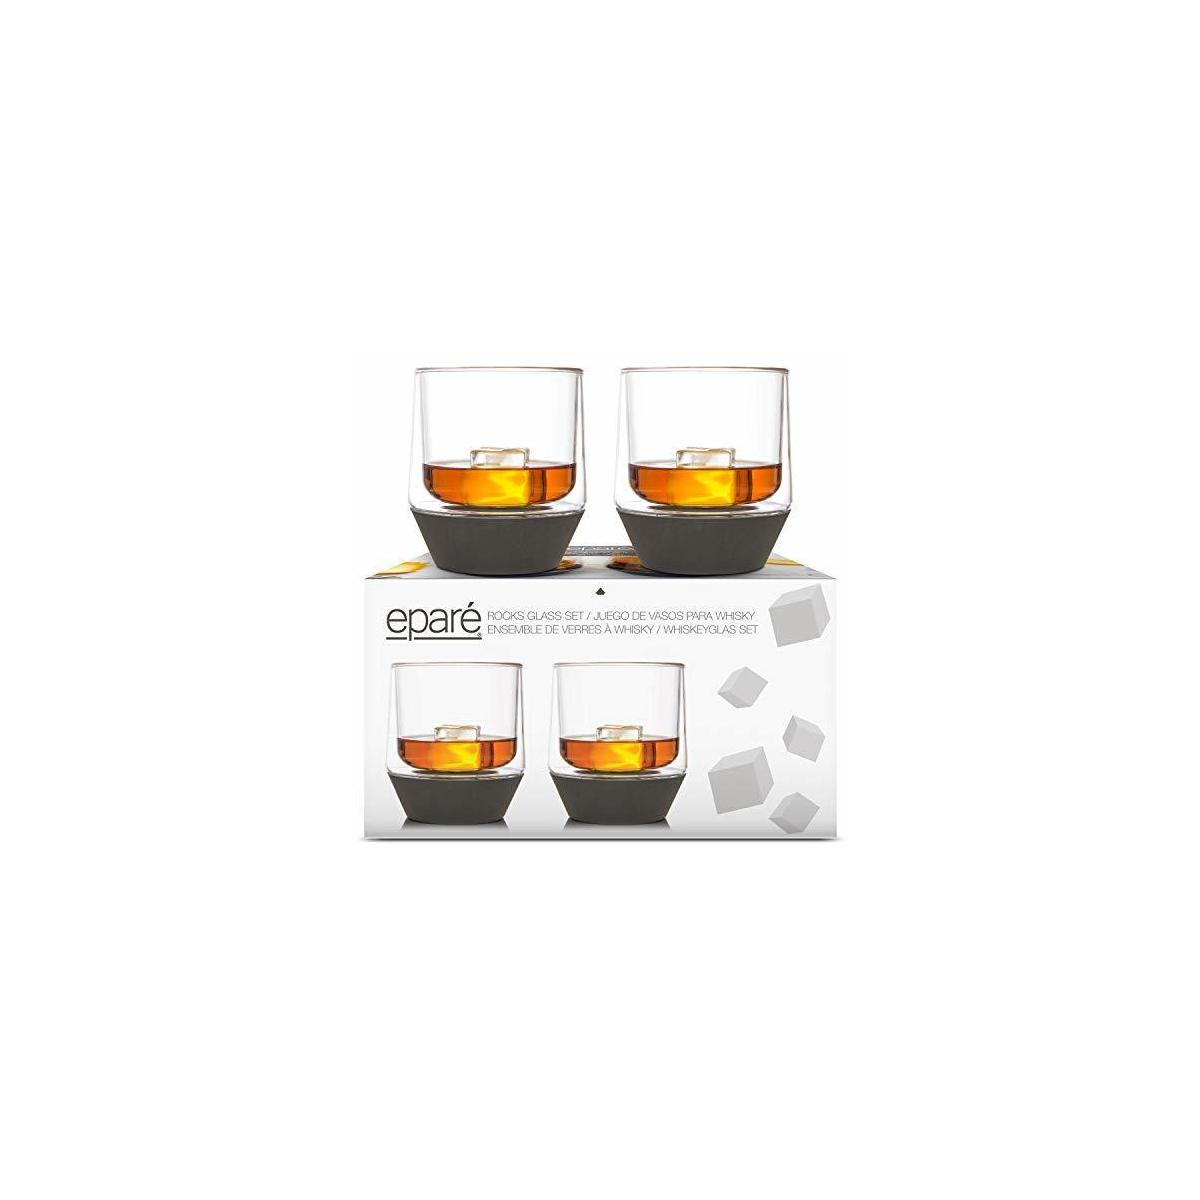 Whiskey Glasses - 9 oz Tumblers for Old Fashioned - Set of 2 - Spill Preventing Glassware - Black Silicone Base